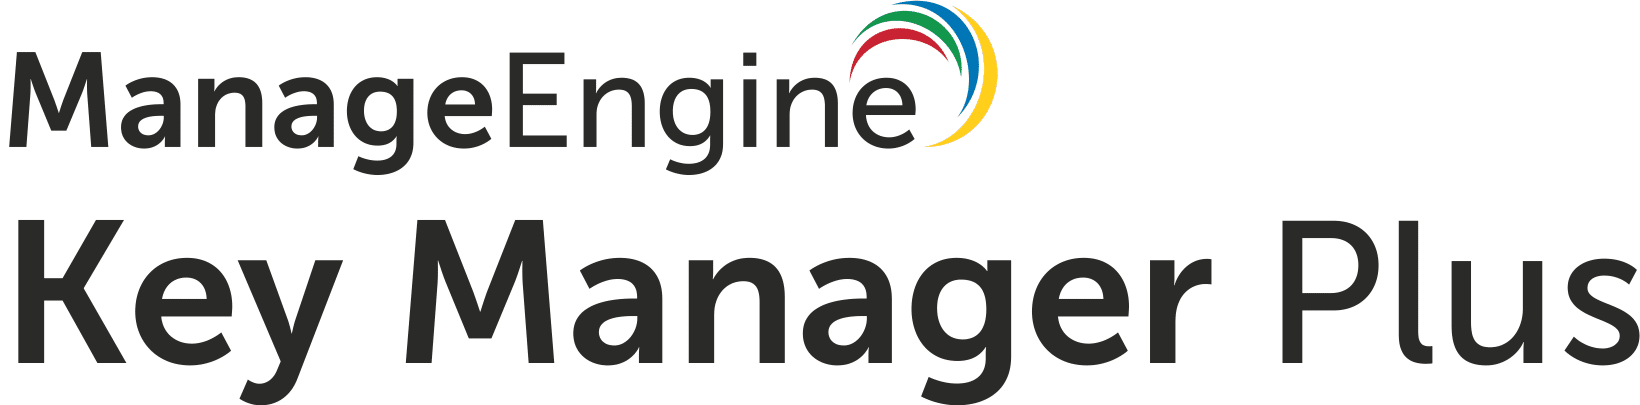 ManageEngine Key Manager Plus - Encryption Key Management Software : SaaSworthy.com